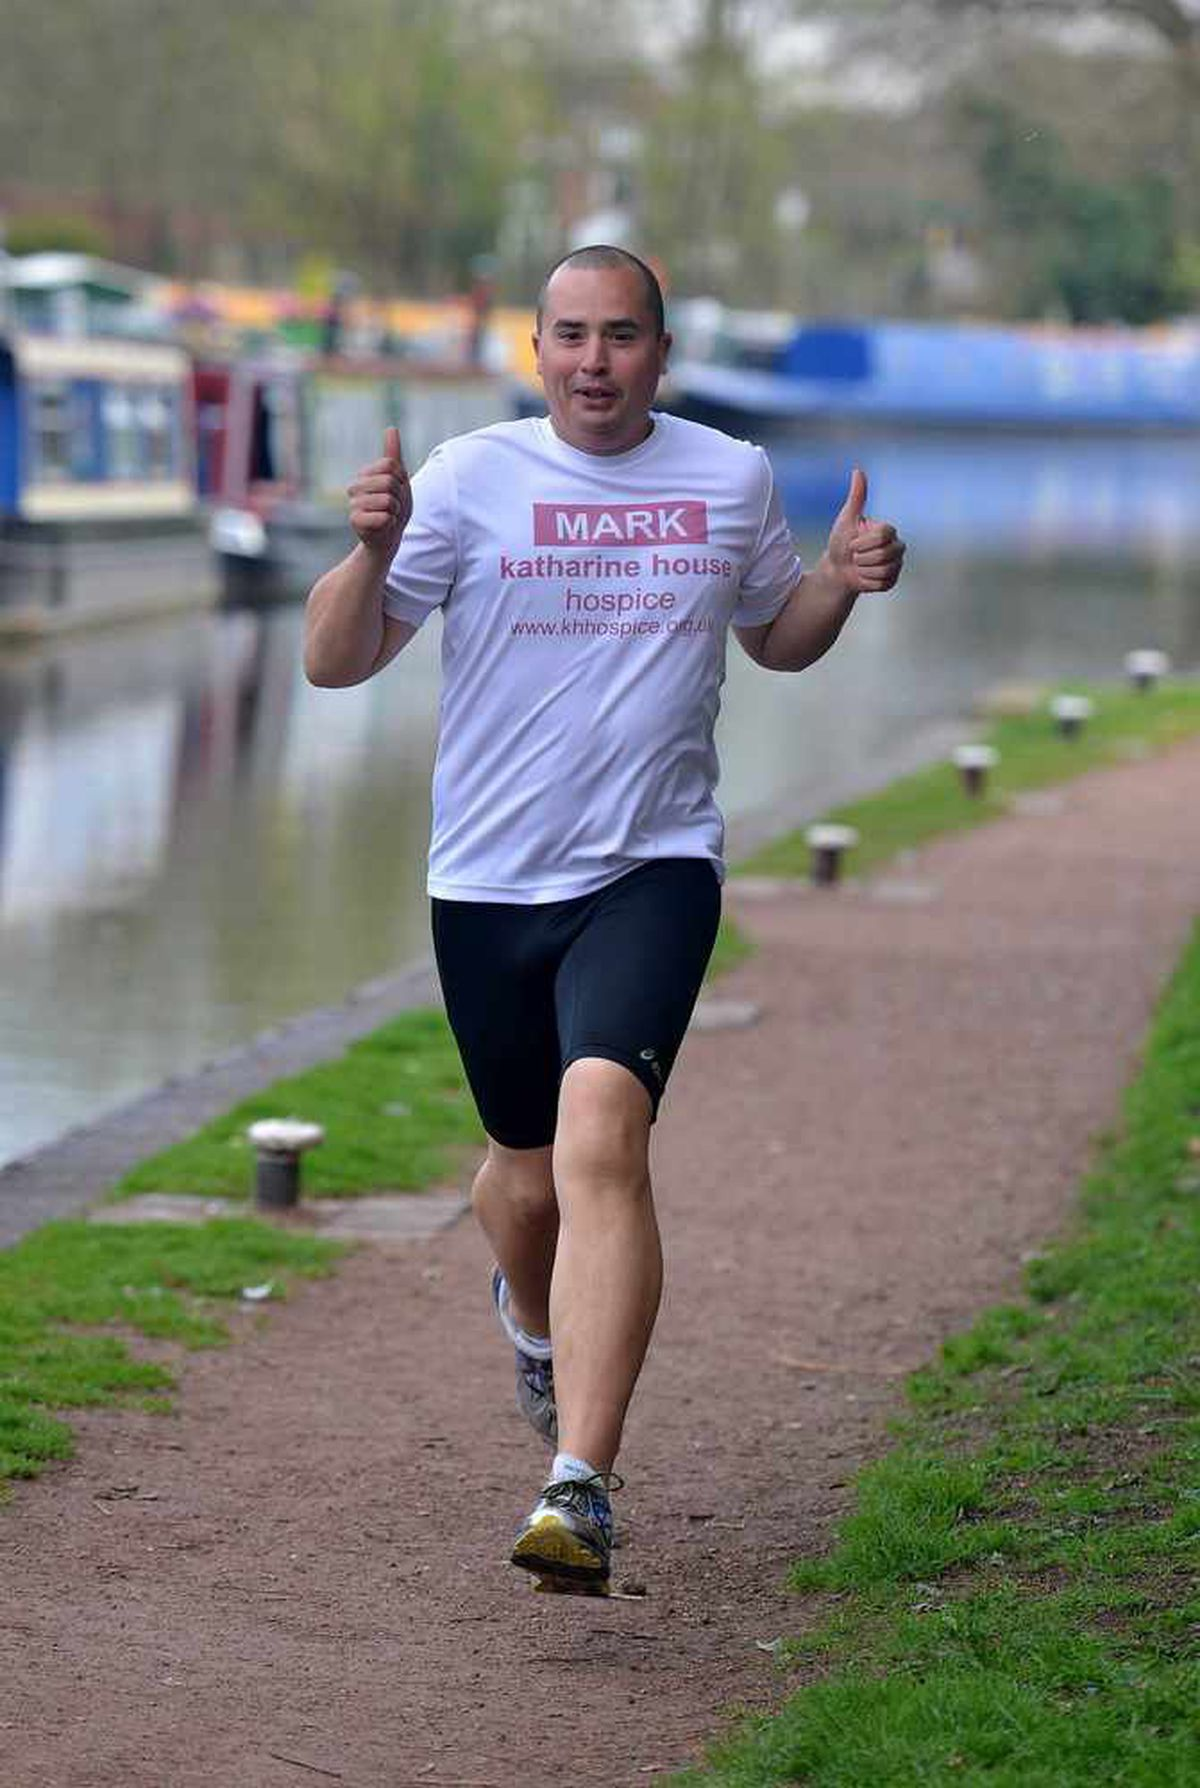 Mark Vaz strides out alongside the canal which will be one of his marathon distance runs